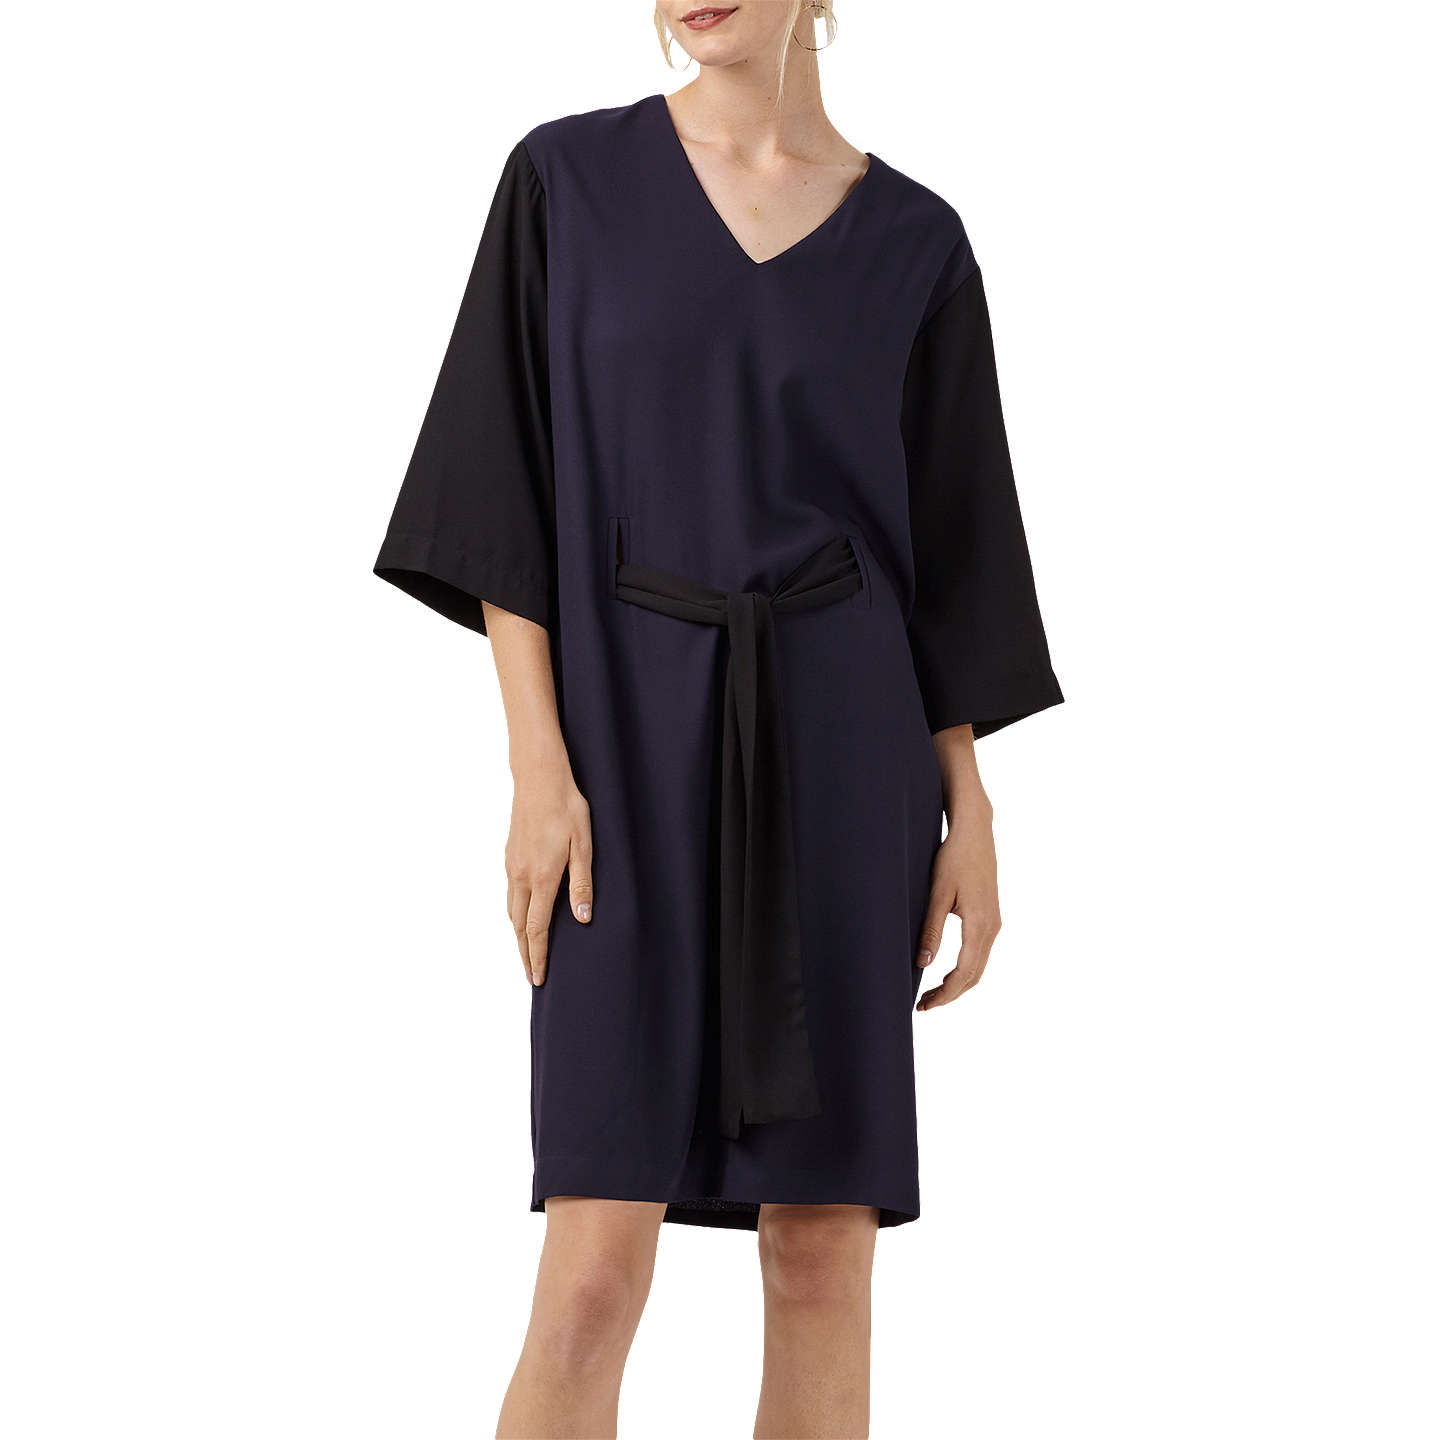 Popham Navy and Black Dress Finery Buy Cheap Comfortable zmSxoW3nSL